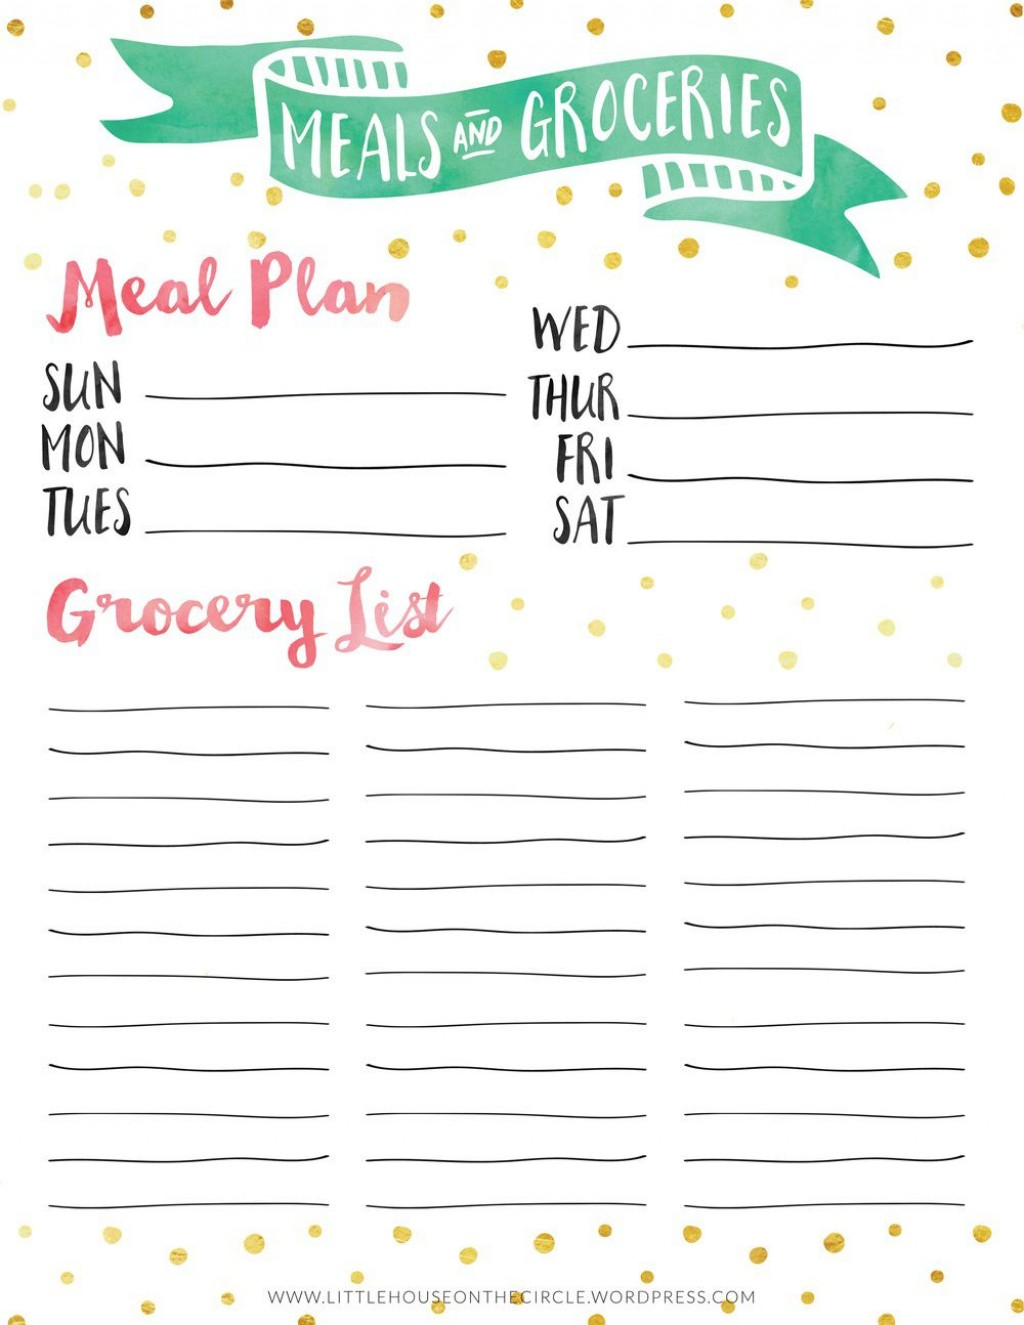 005 Dreaded Meal Plan With Printable Grocery List Inspiration  Planning Template Excel FreeLarge